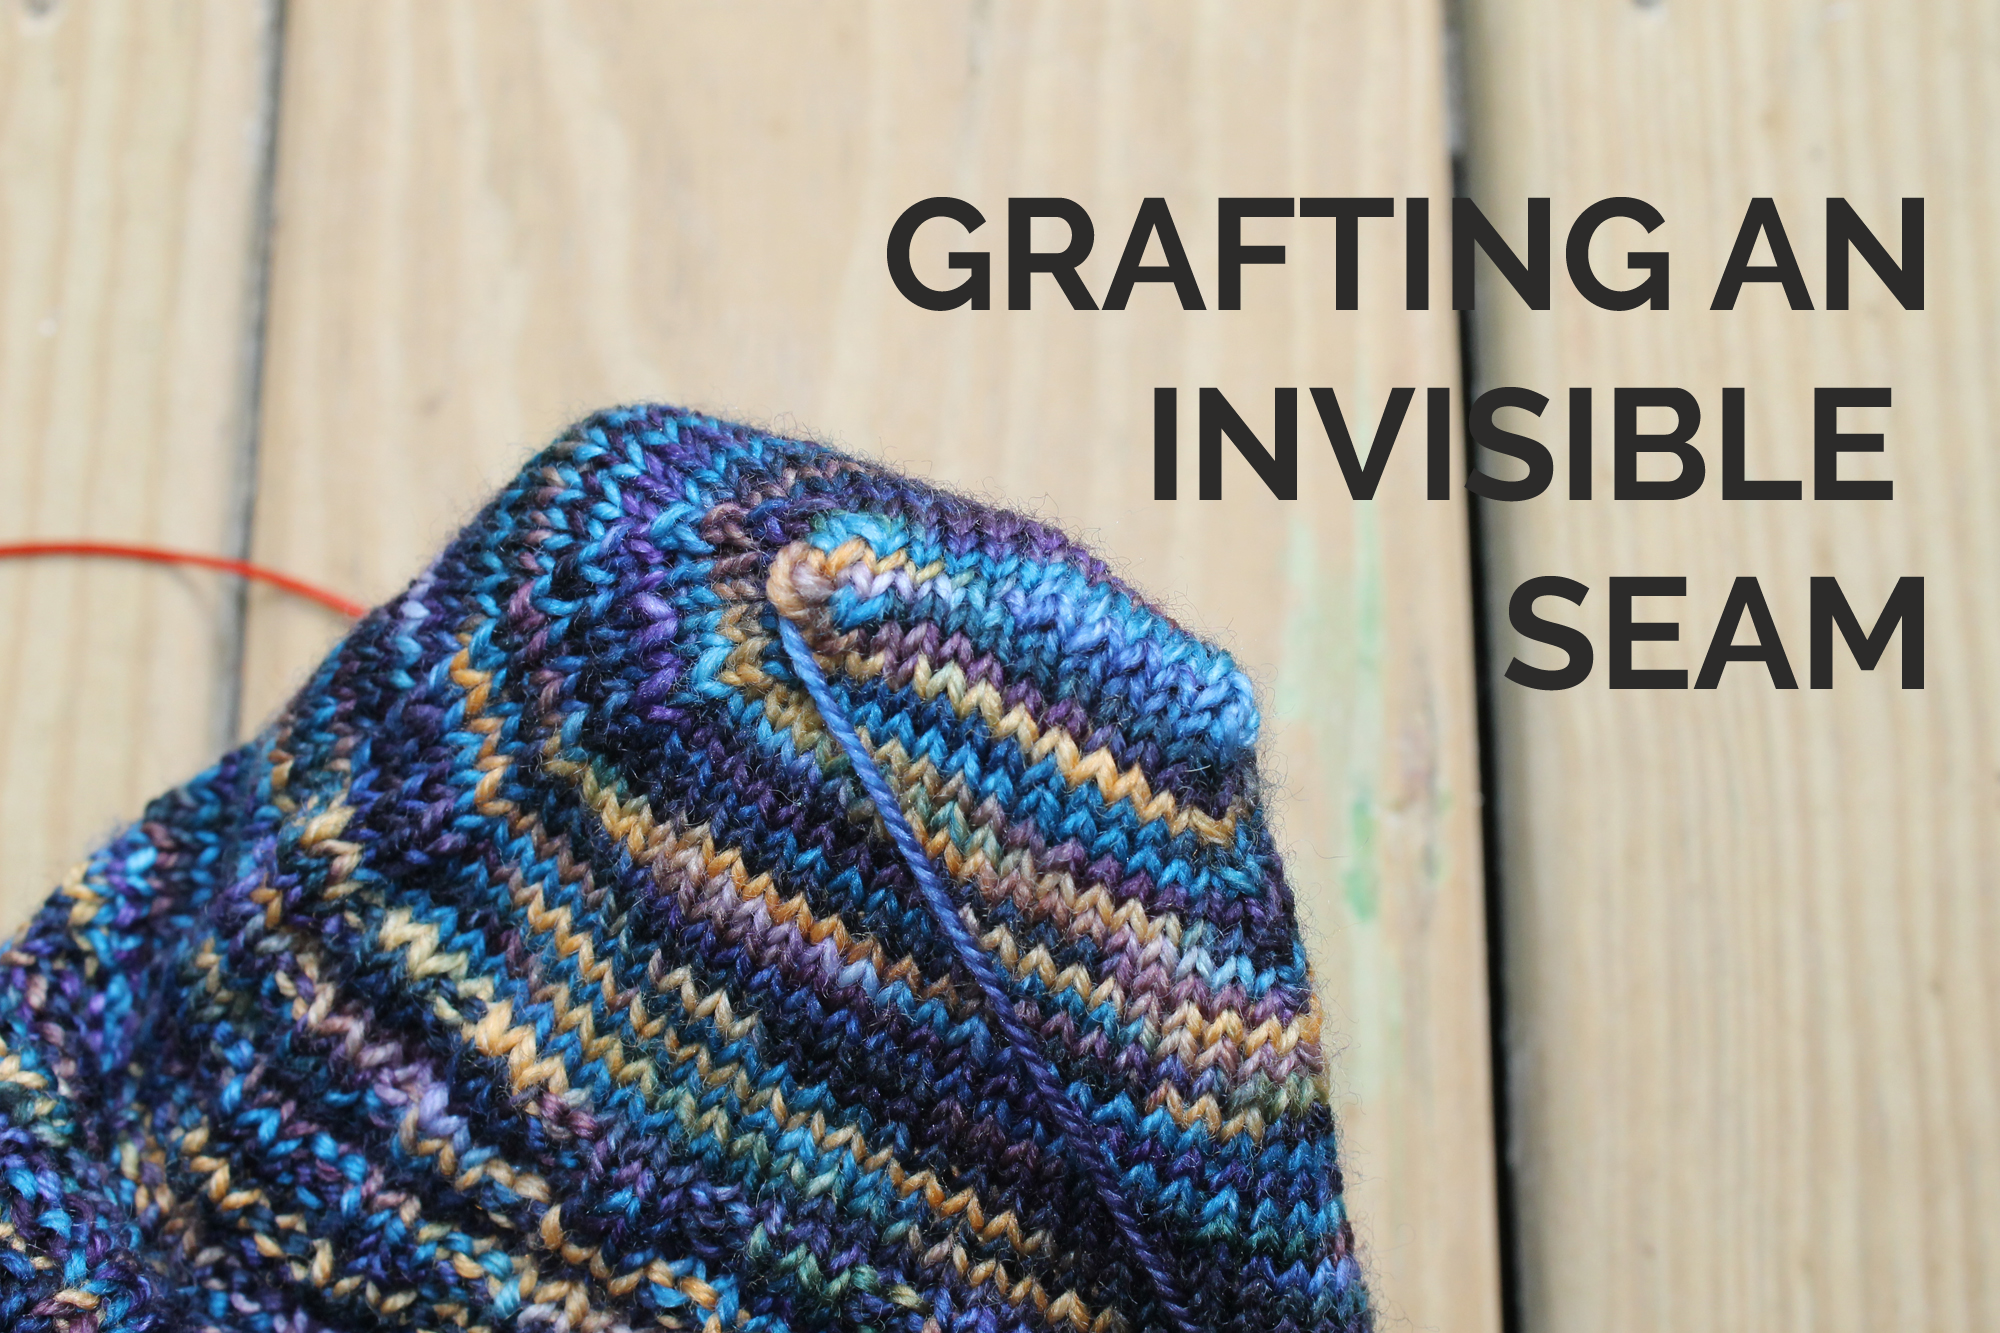 Grafting an Invisible Seam